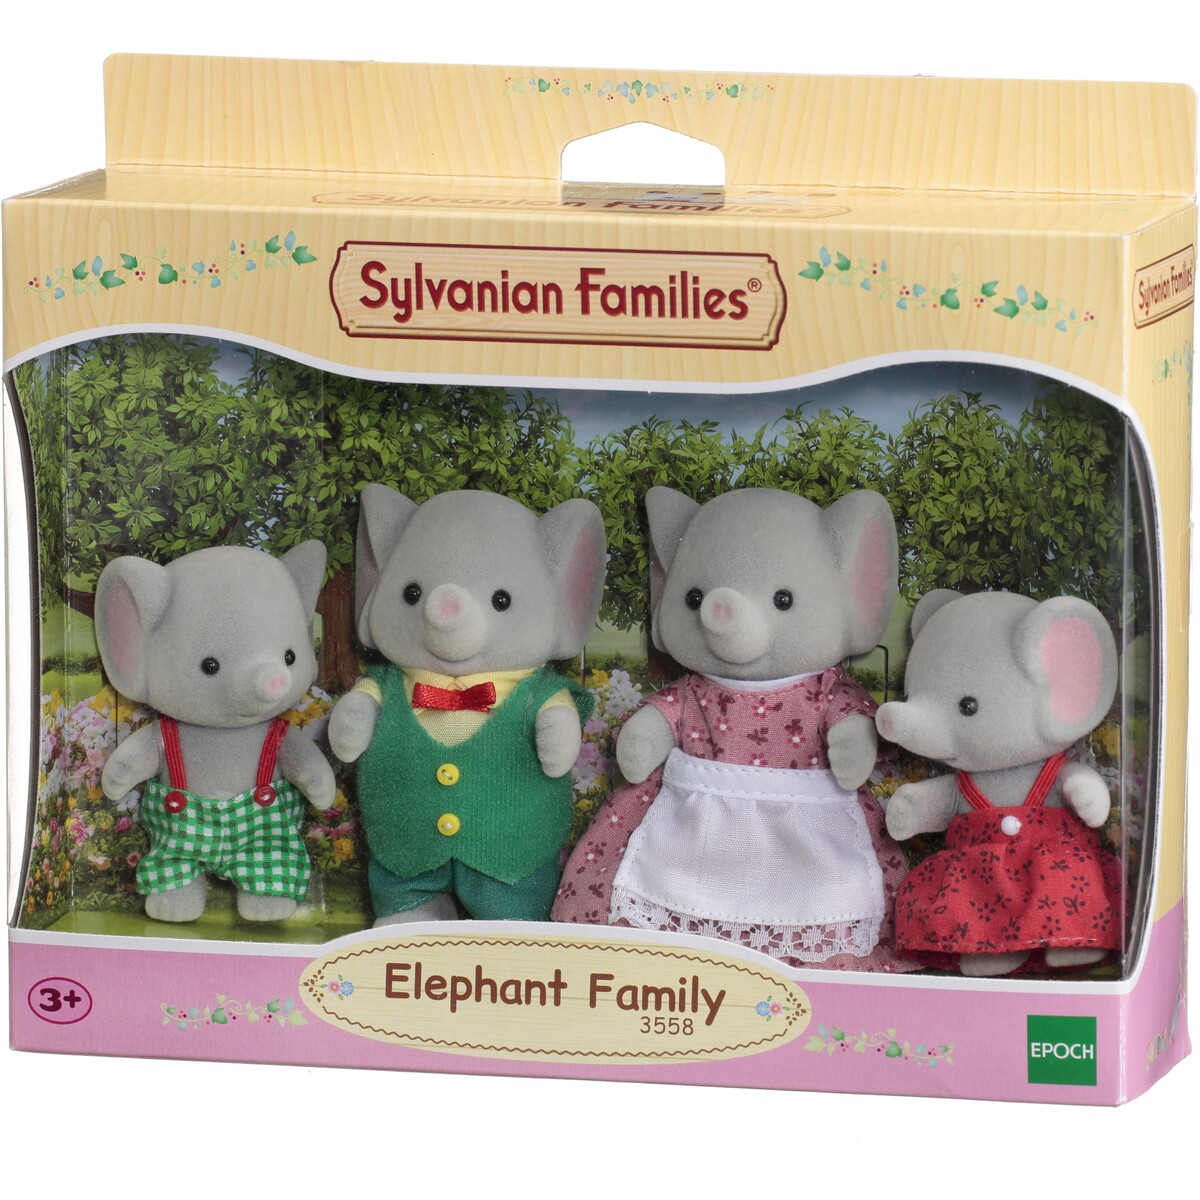 Sylvanian Families 3558 Elephant Family in box